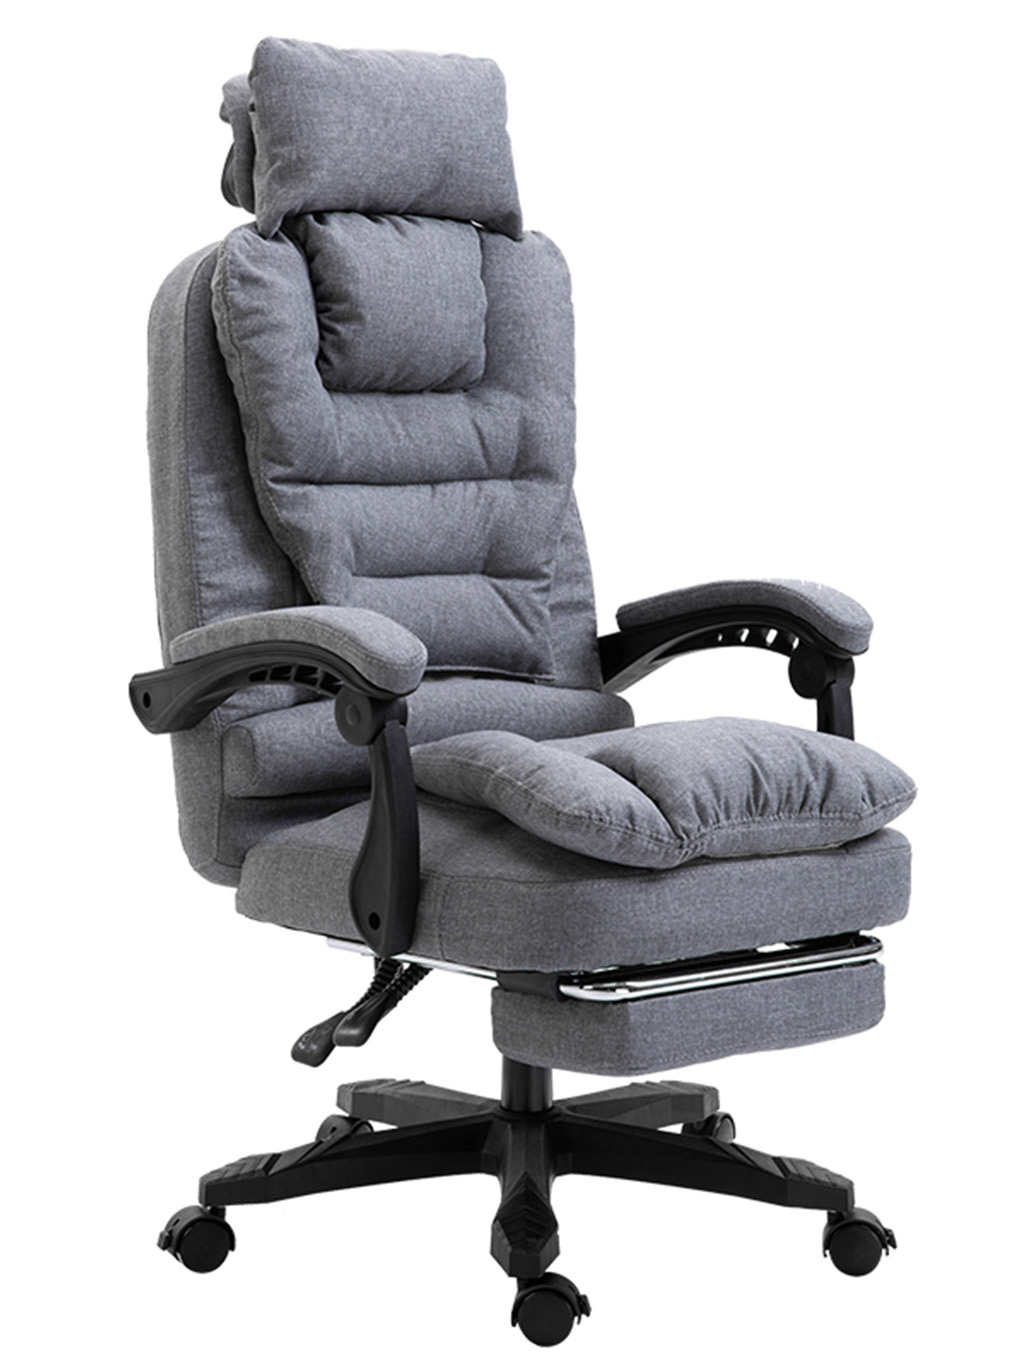 Computer Chair Home Leisure Boss Headrest Removable Office Swivel Chair Back Massage Chair Can Lounge Chair